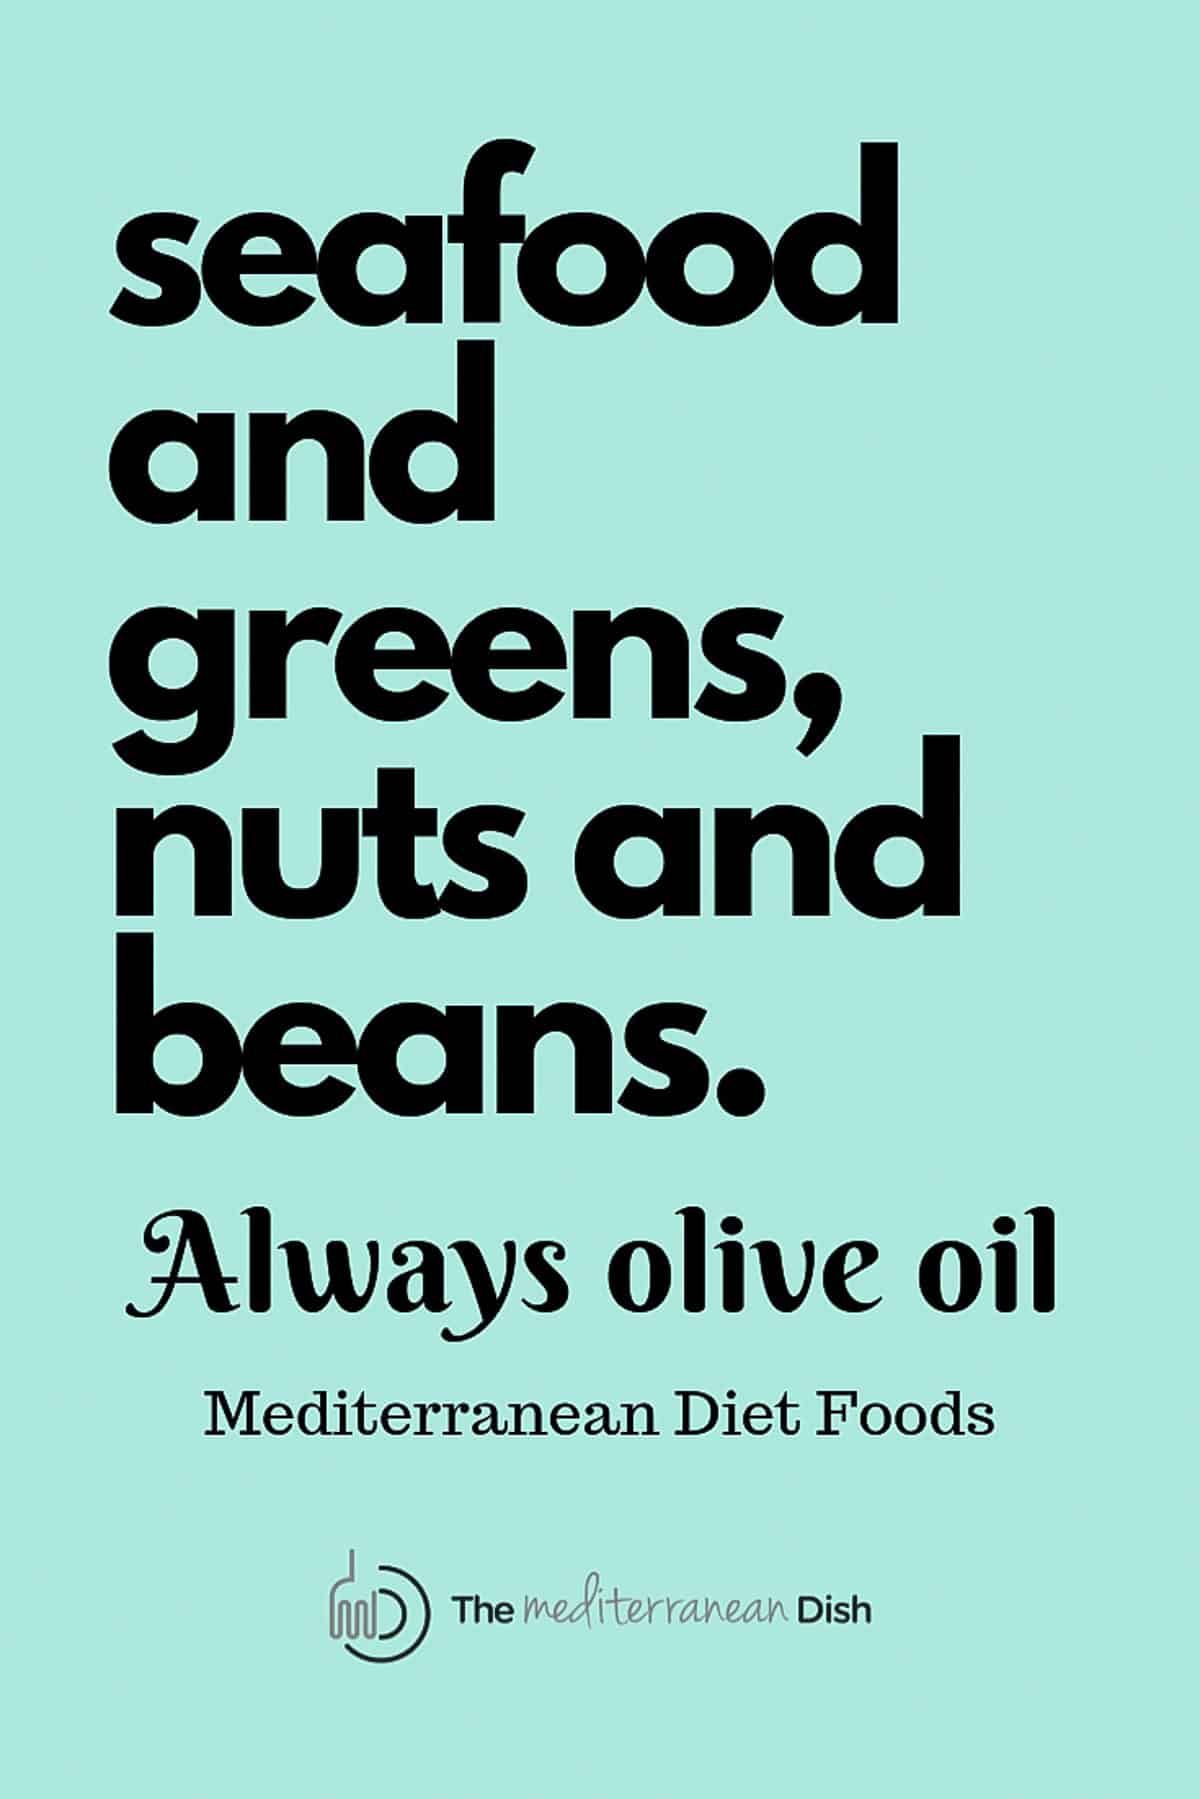 Seafood and greens, nuts and beans. Mediterranean diet food list